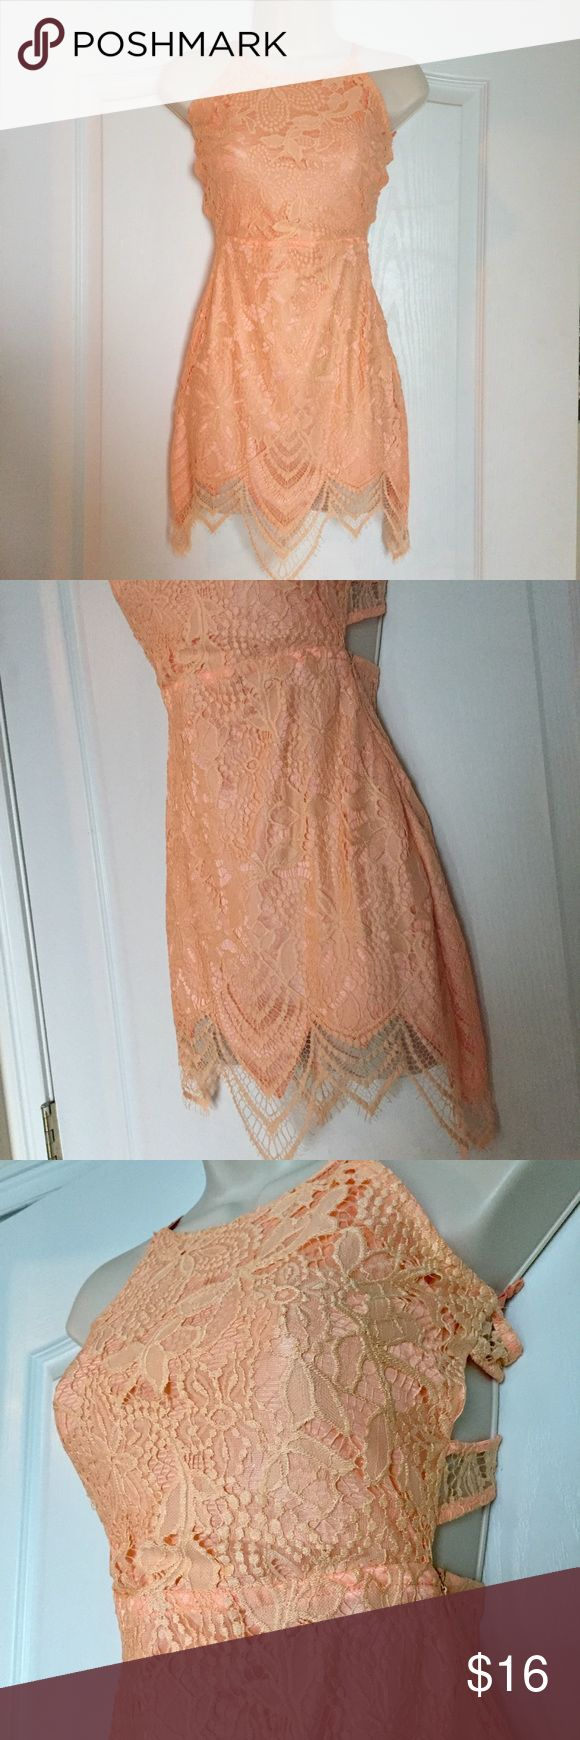 Peach lace dress Peach lace dress NWOT Lightweight material with a zipper side and tie back Size S but fits like an XS Dresses